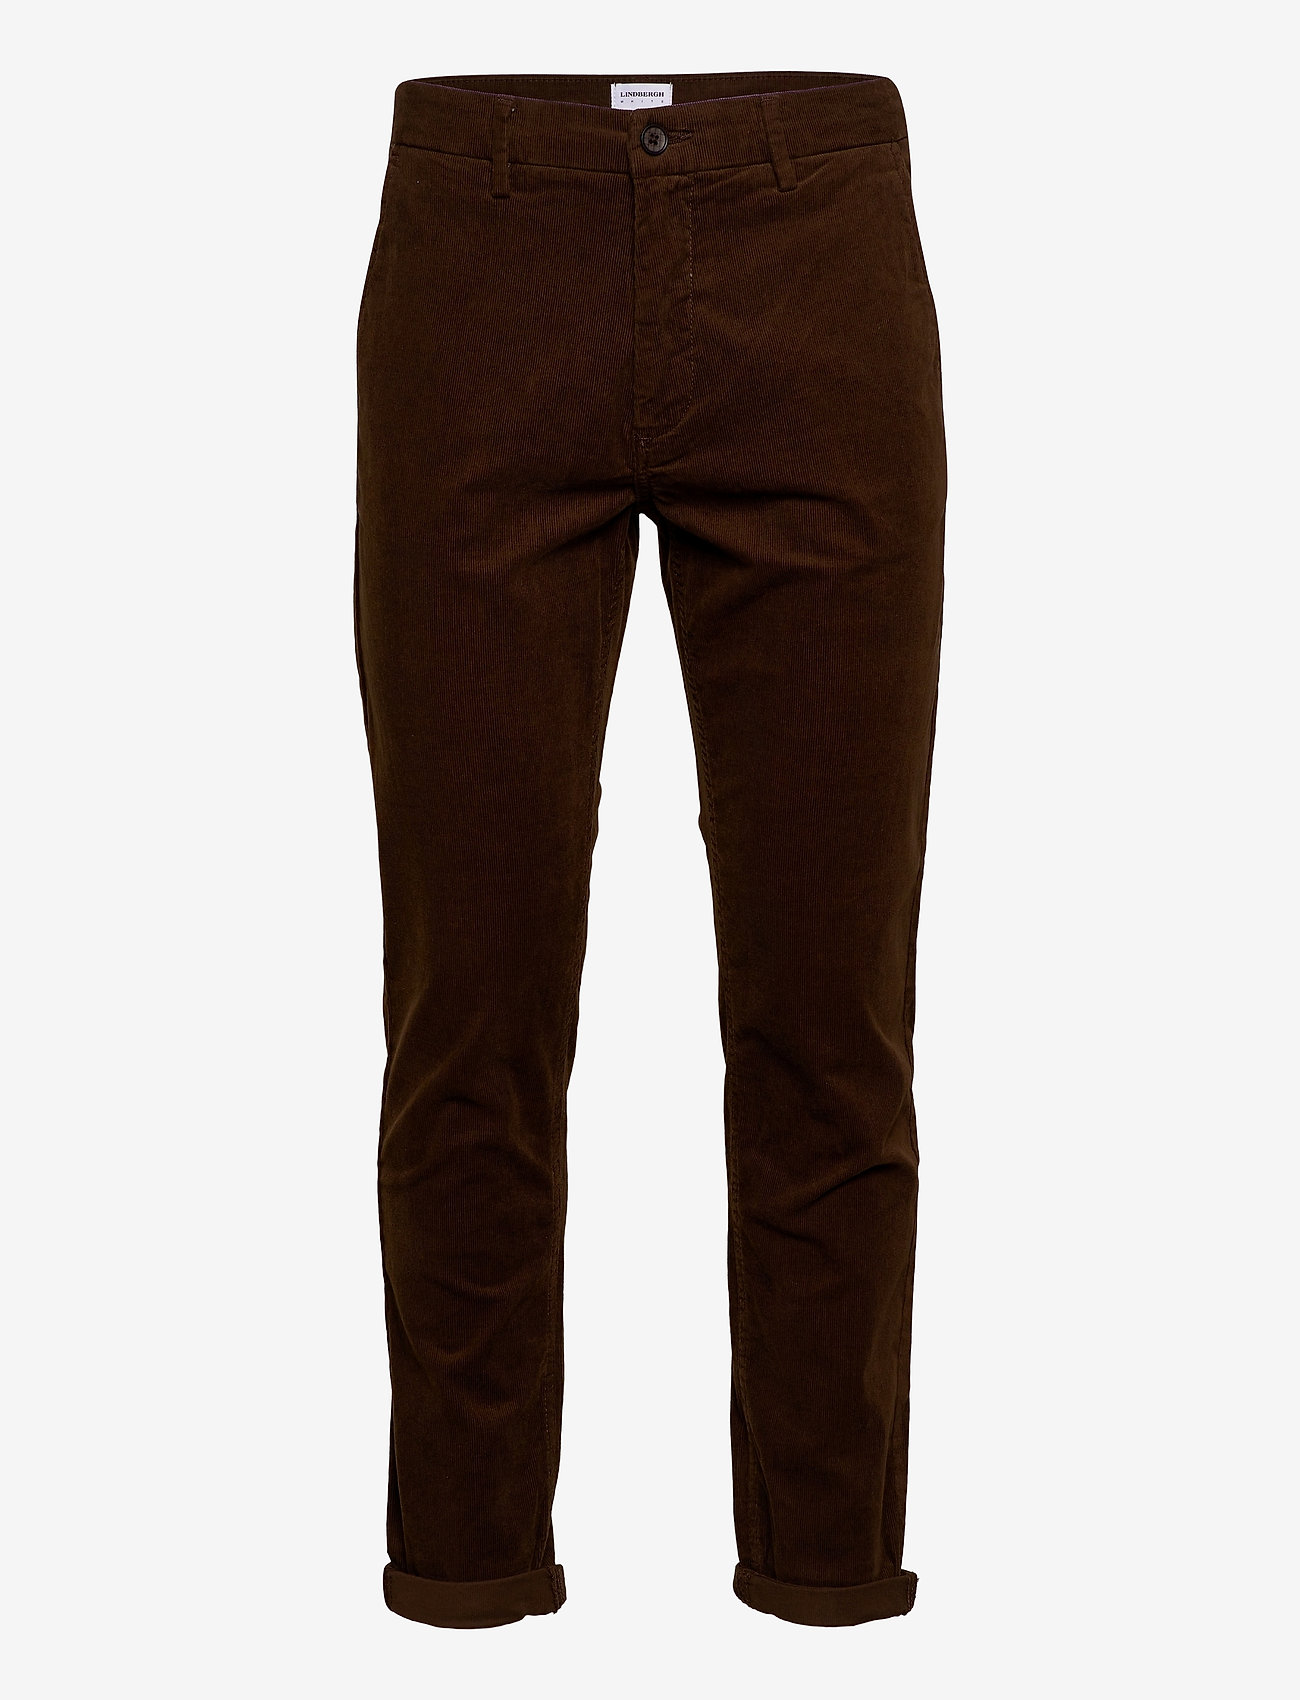 Lindbergh - Corduroy slim fit pants - rennot - brown - 0